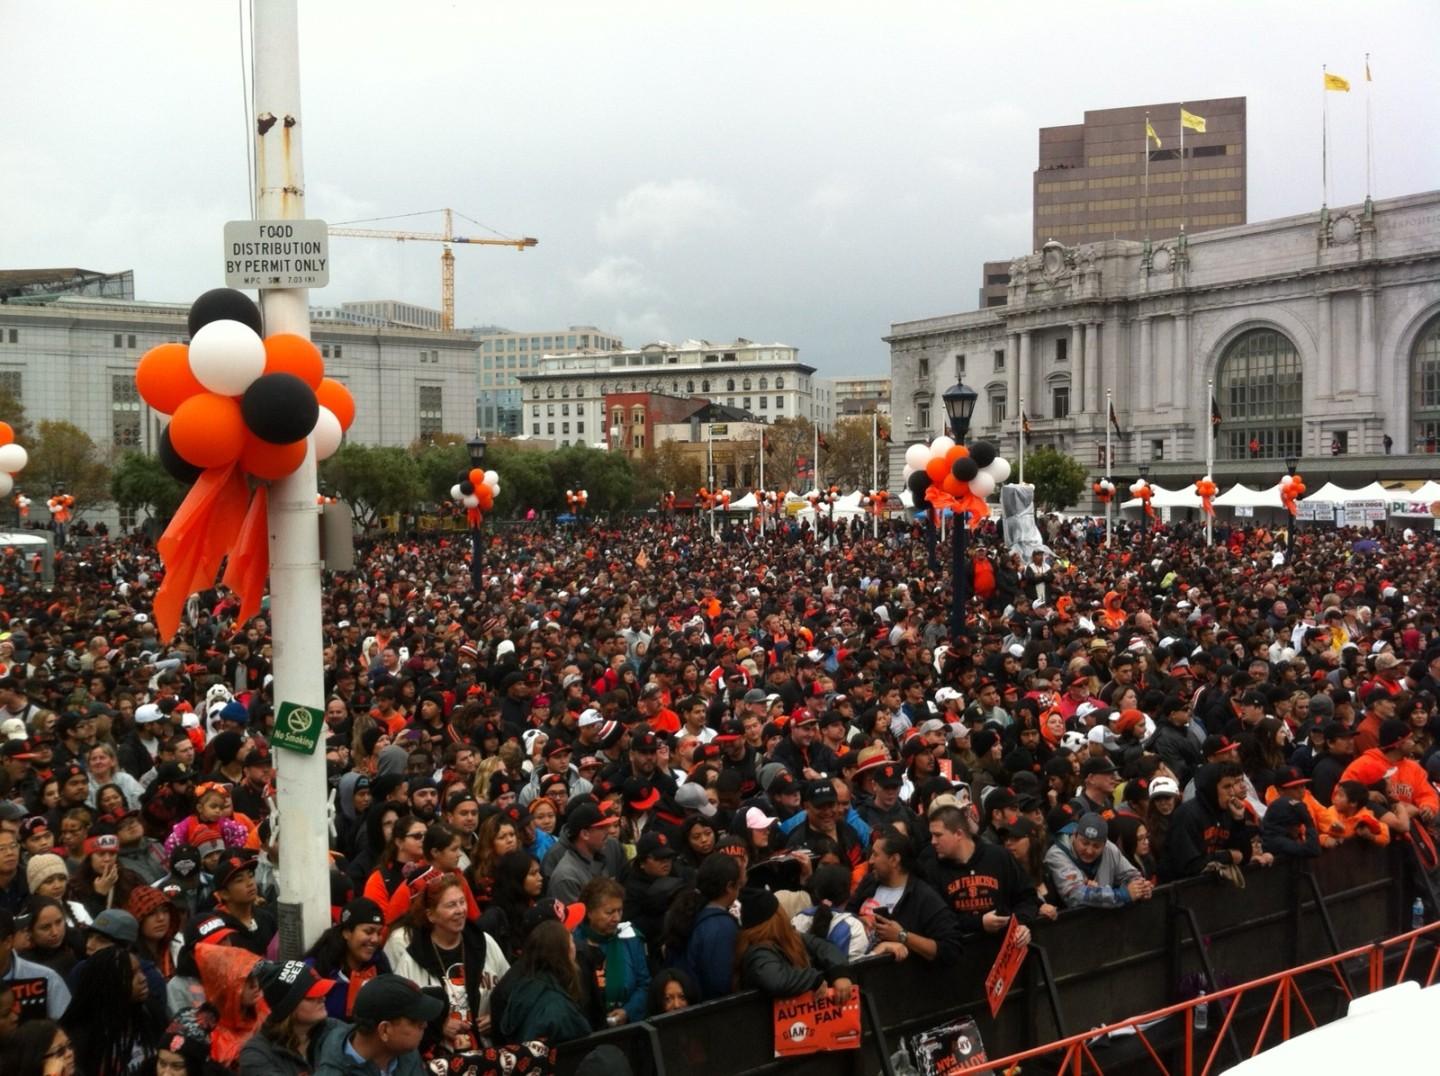 News Pix: Giants Win the World Series, Fans Celebrate, and A Parade